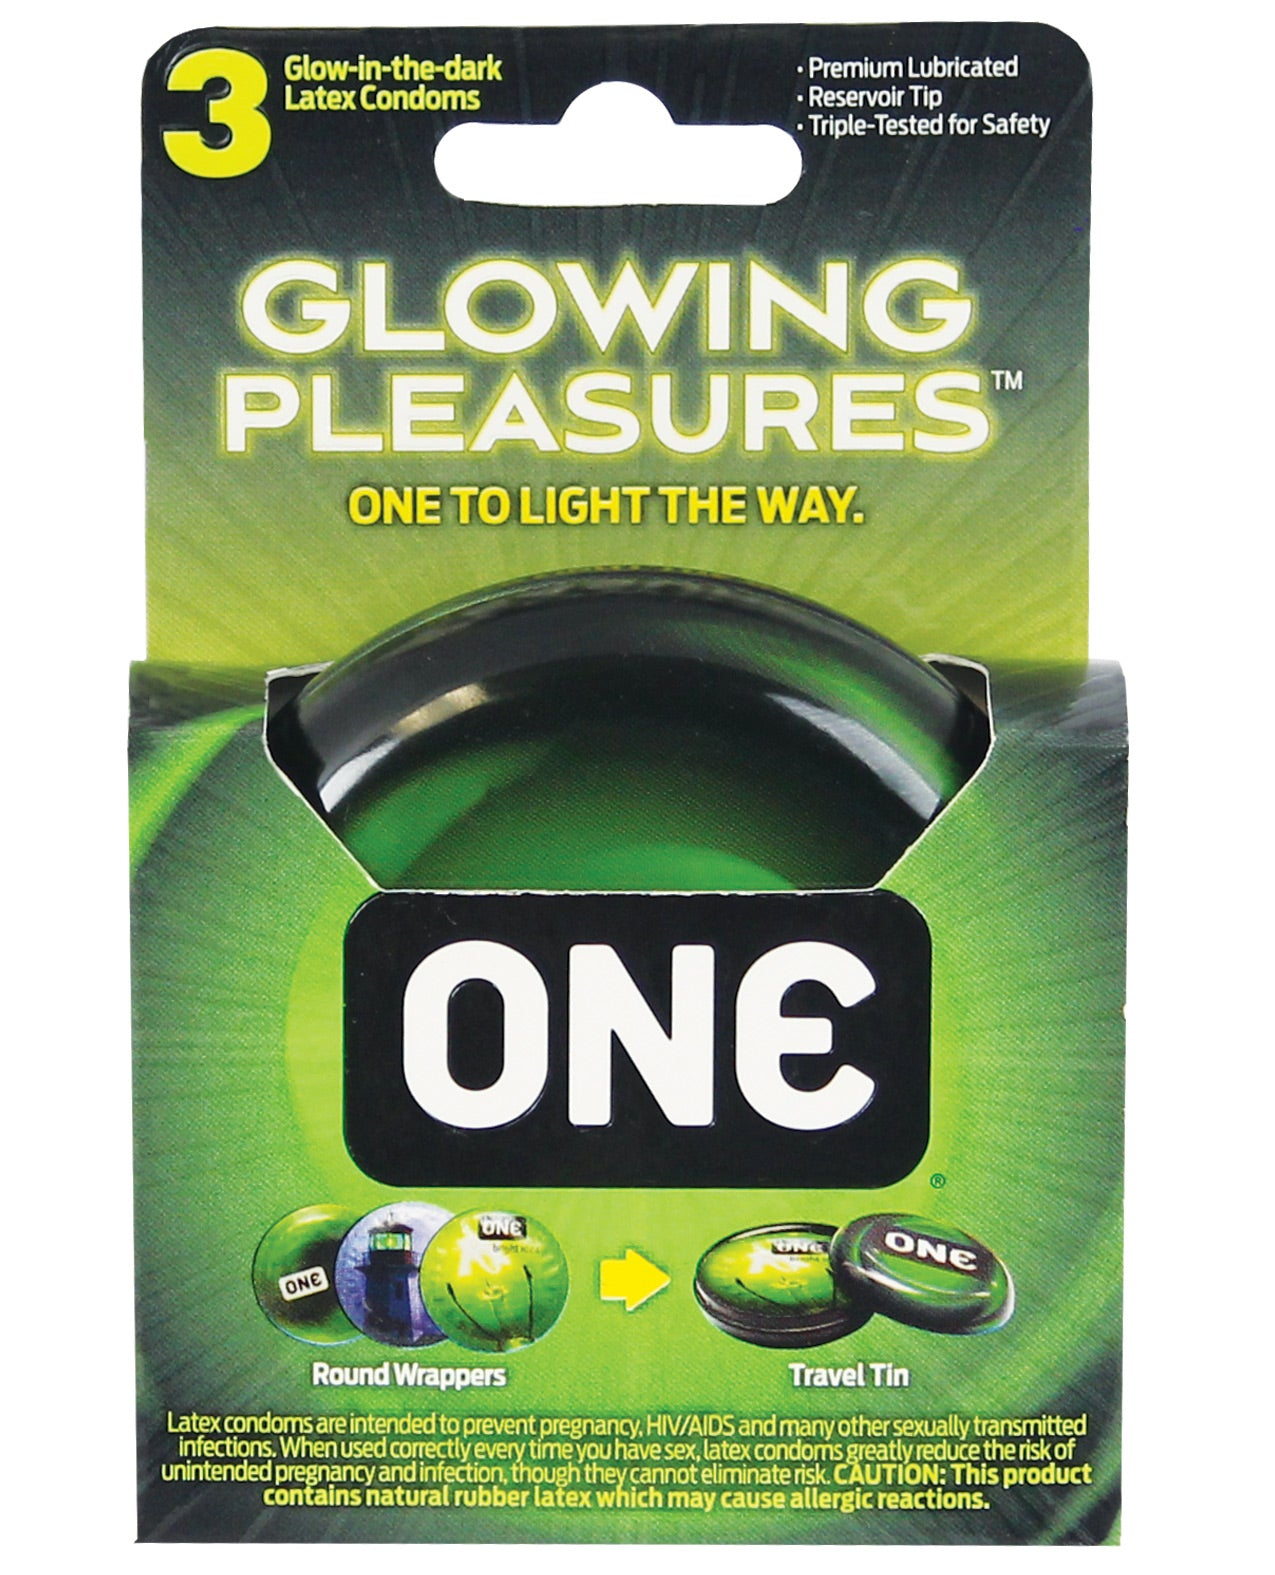 Glowing Condoms